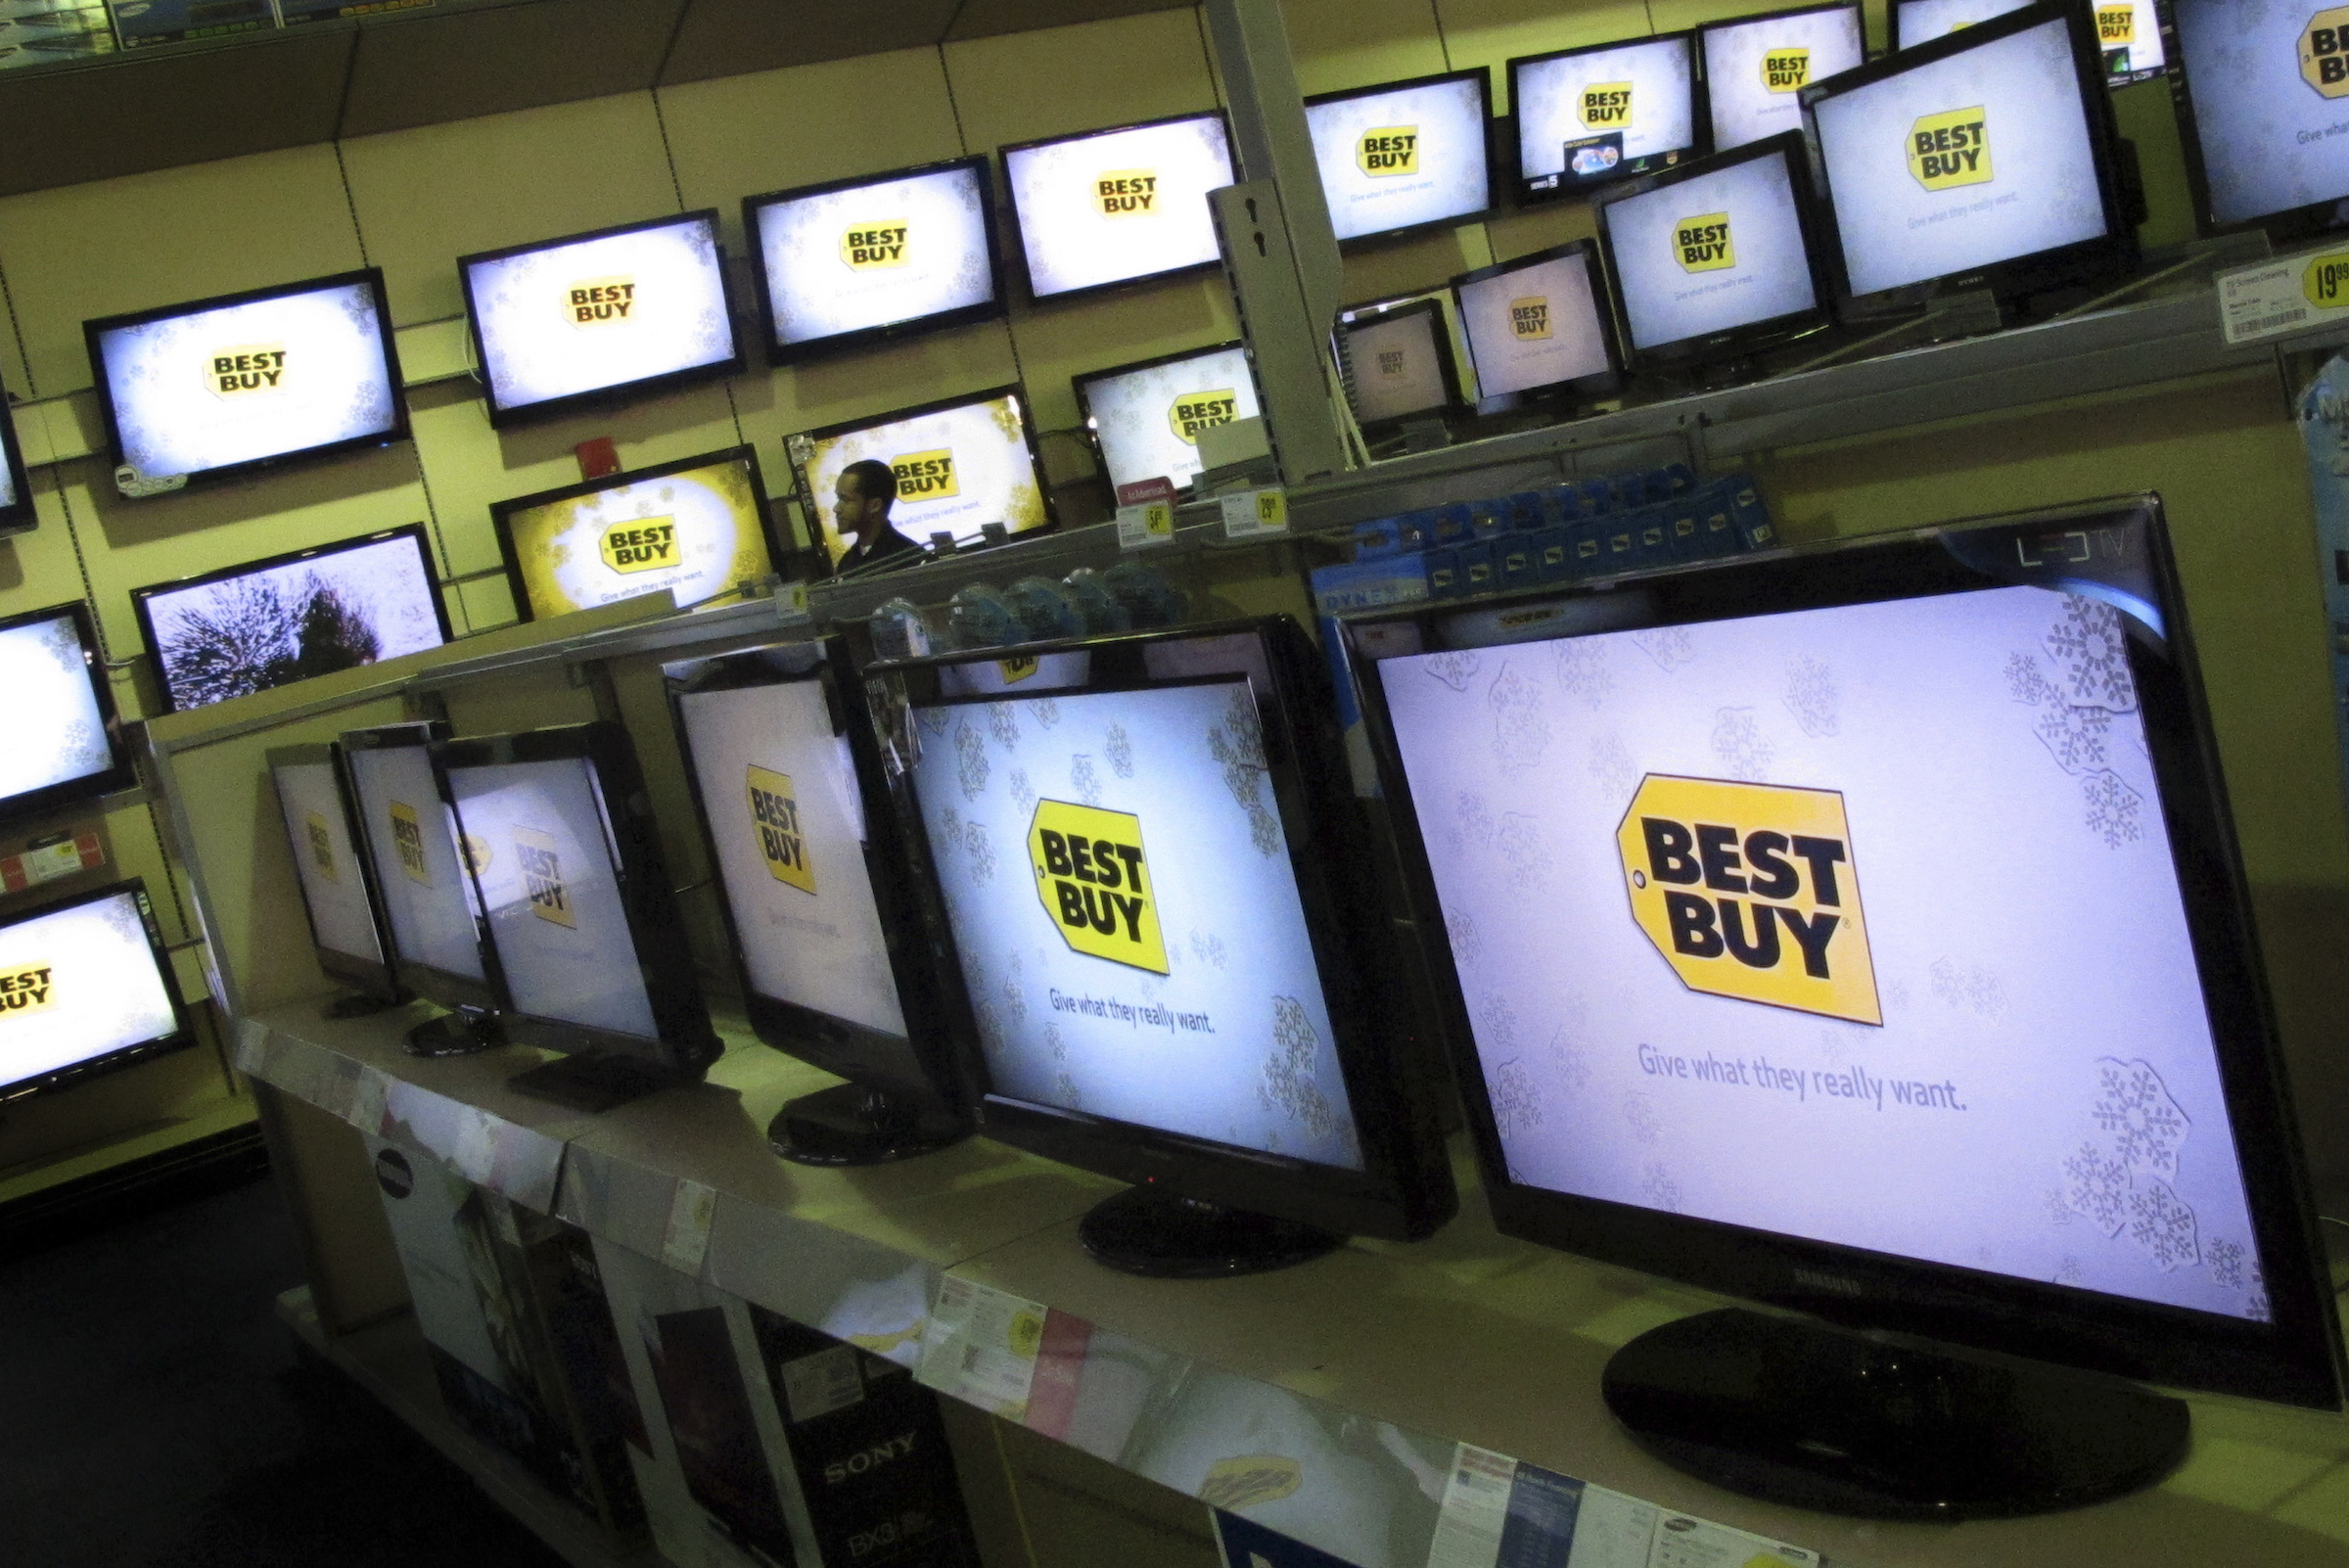 A man walks past televisions for sale at a Best Buy store in New York November 23, 2010. REUTERS/Mike Segar (UNITED STATES - Tags: BUSINESS)